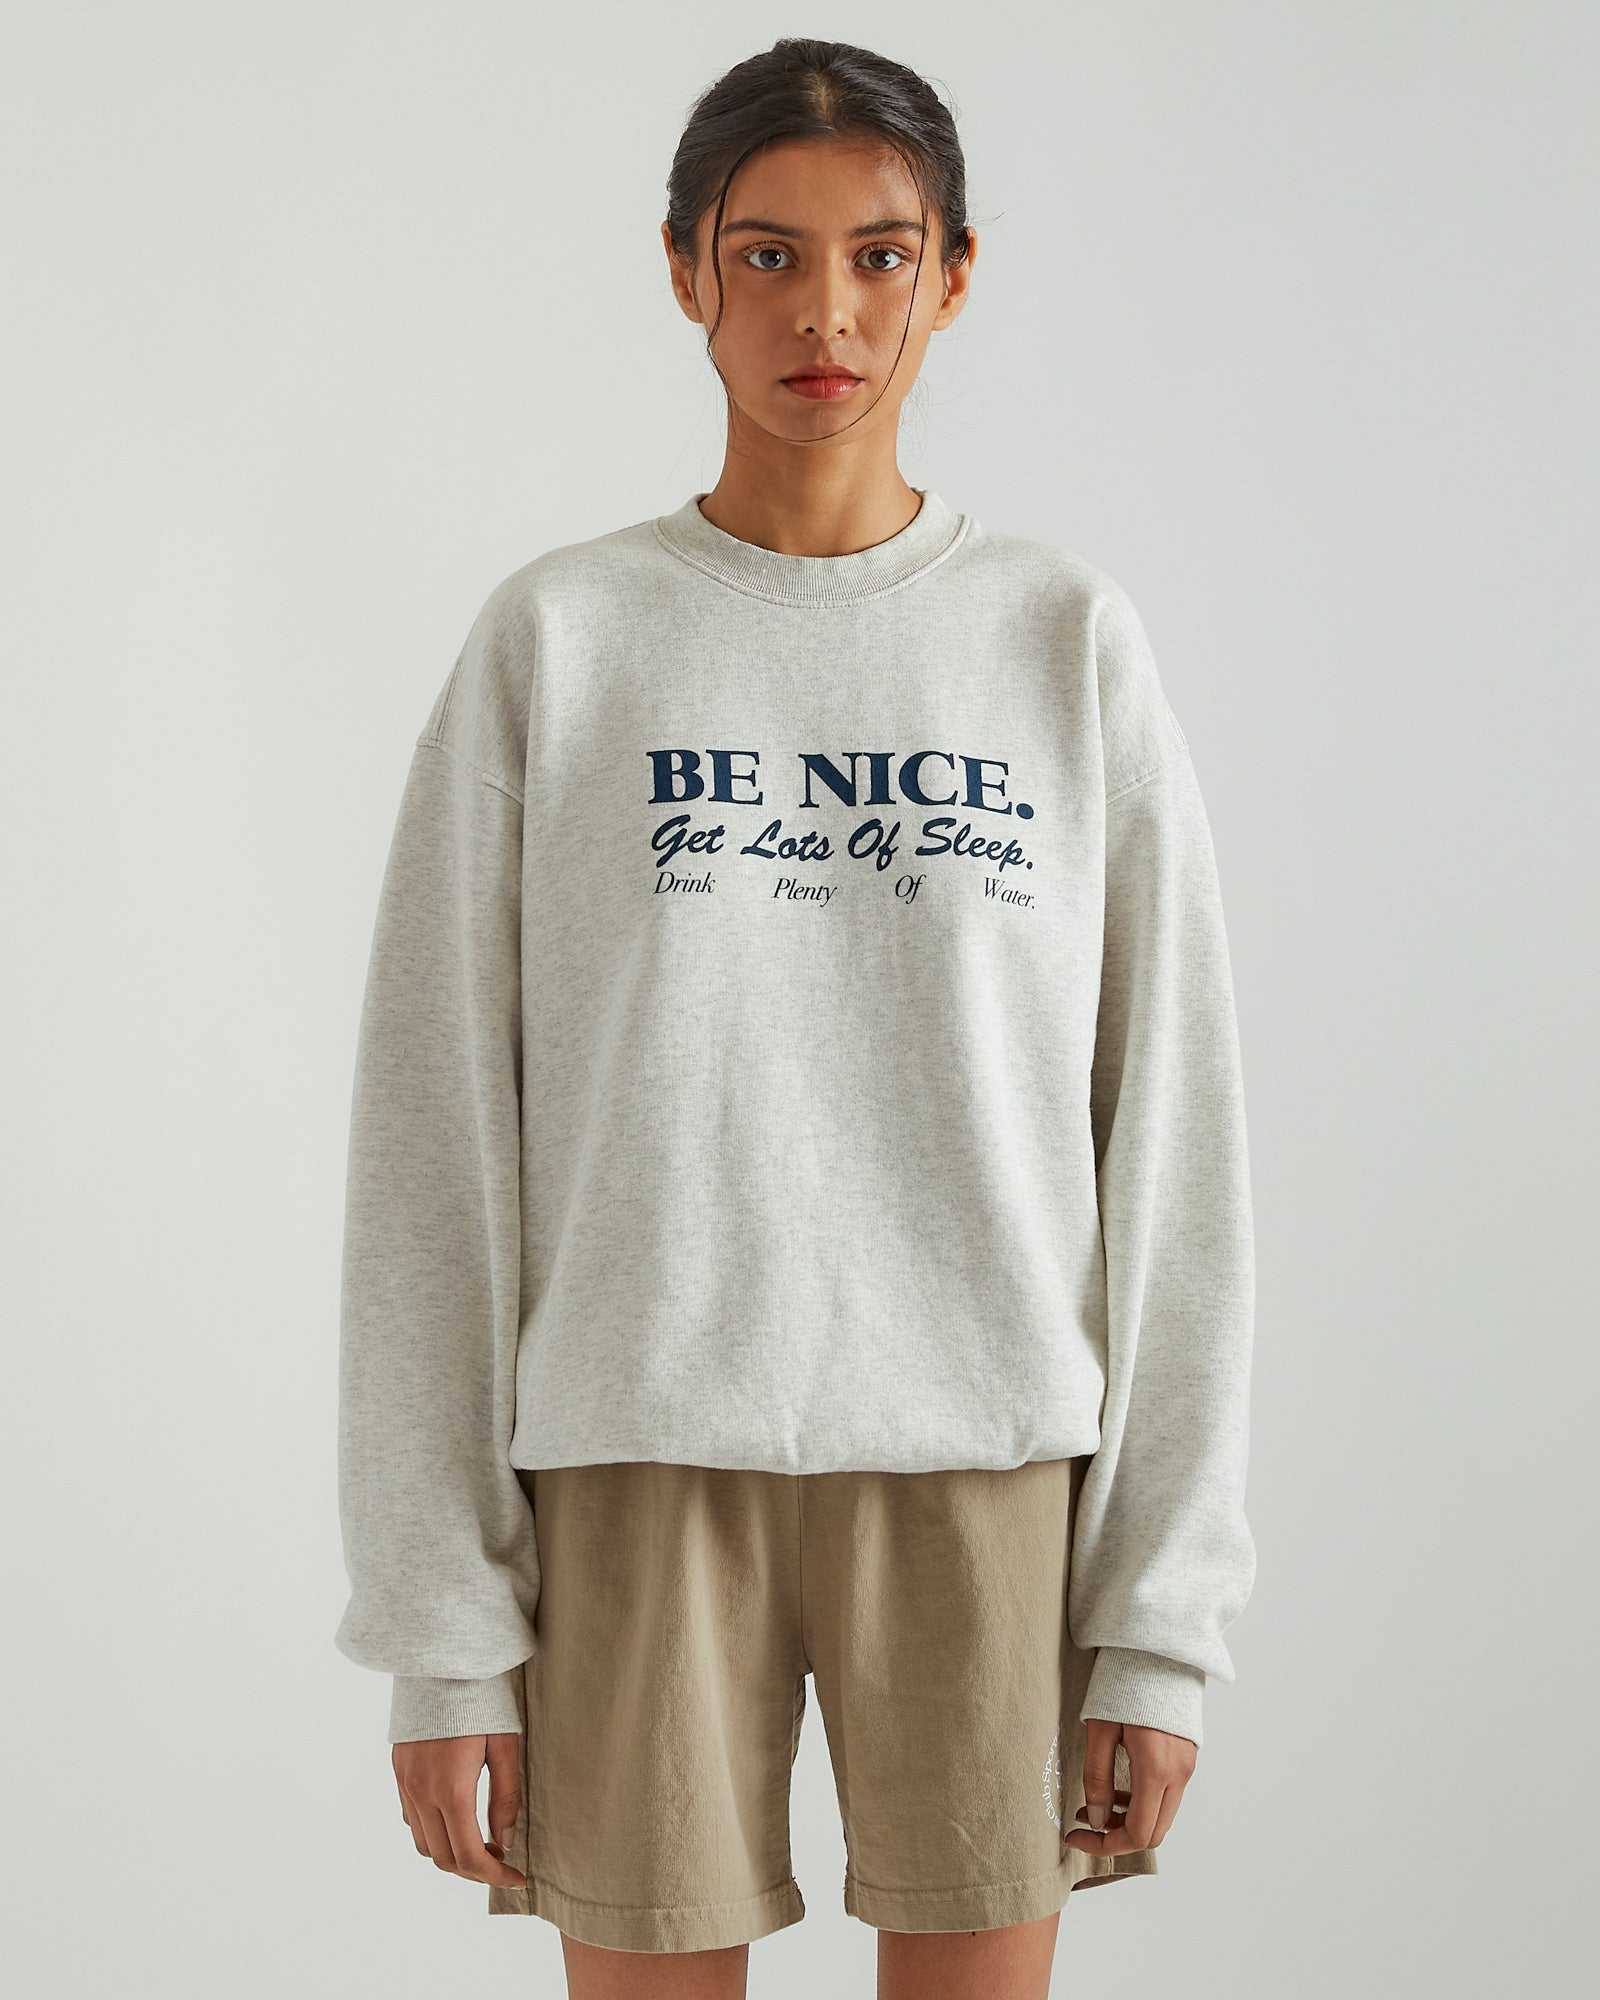 Be Nice Crewneck in Heather Gray